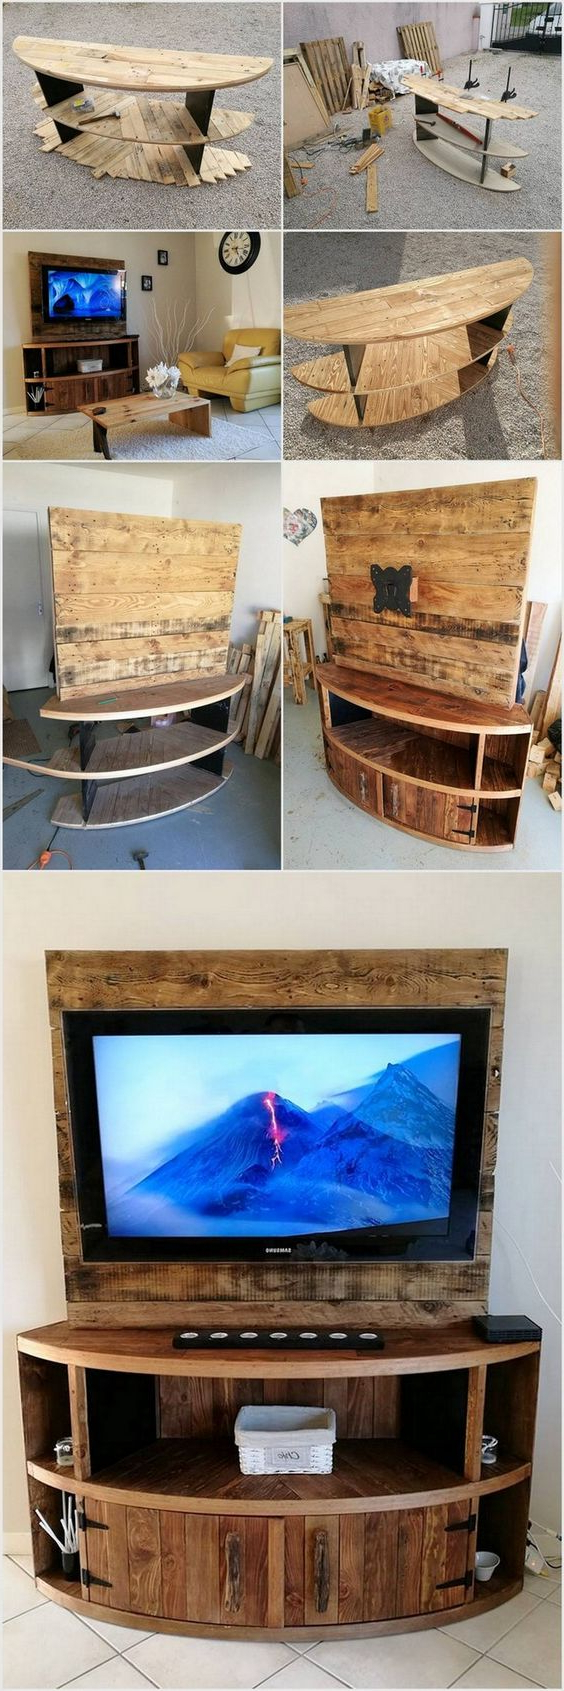 21+ Diy Tv Stand Ideas For Your Weekend Home Project Regarding Tobias Media Console Tables (View 13 of 20)